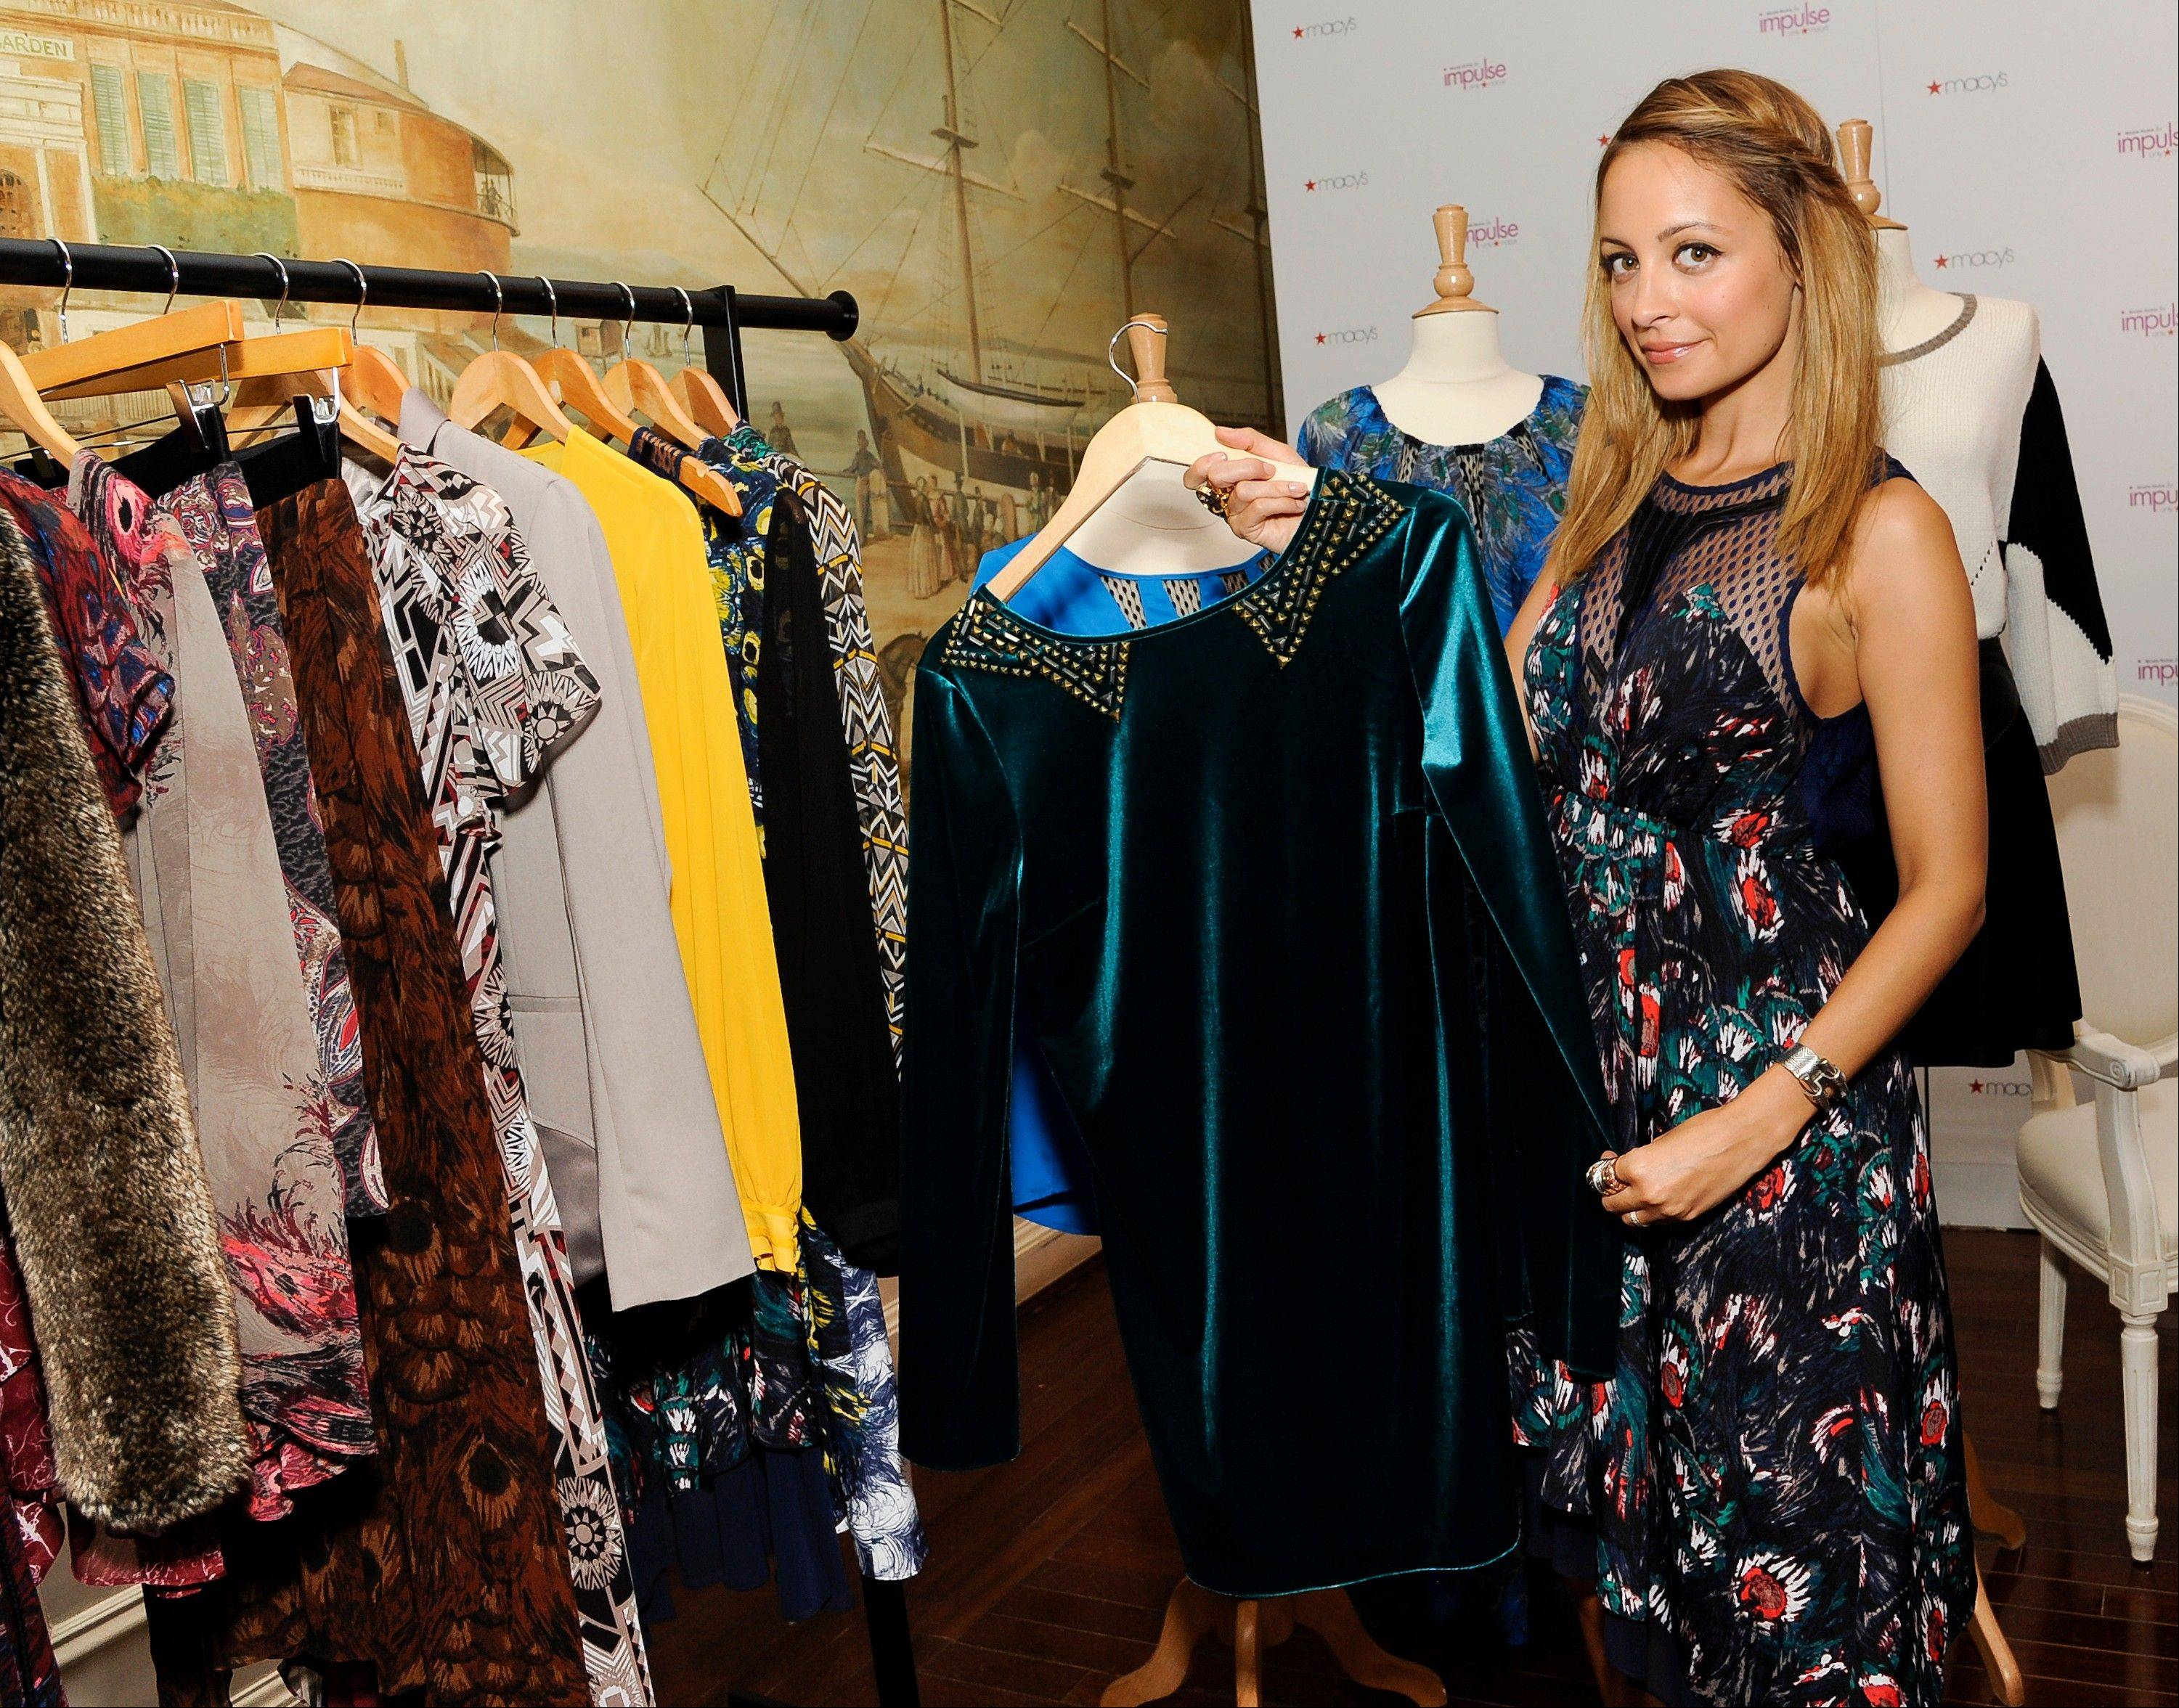 Designer Nicole Richie isn't an industry novice. She already has gained recognition for her lines Winter Kate and House of Harlow, but the Nicole Richie for Impulse collaboration is her greatest exposure yet.